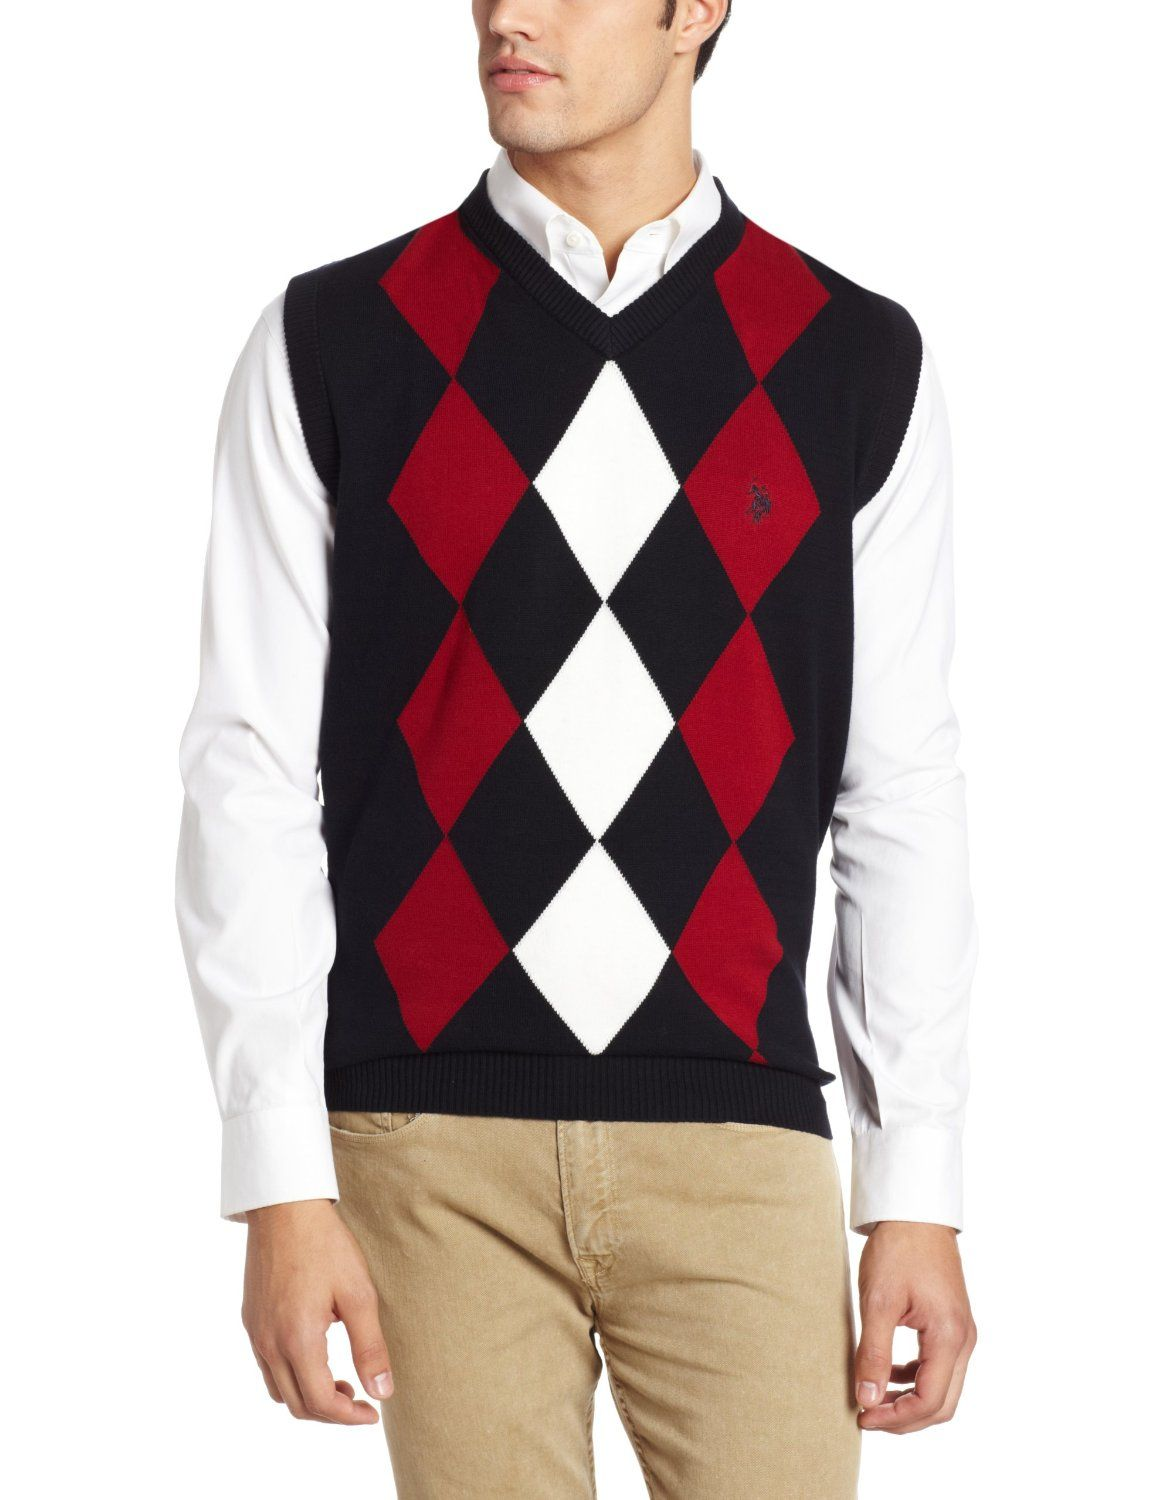 e4ceb739d6ee Argyle sweater vests ought to be worn over solid colored polo shirts ...